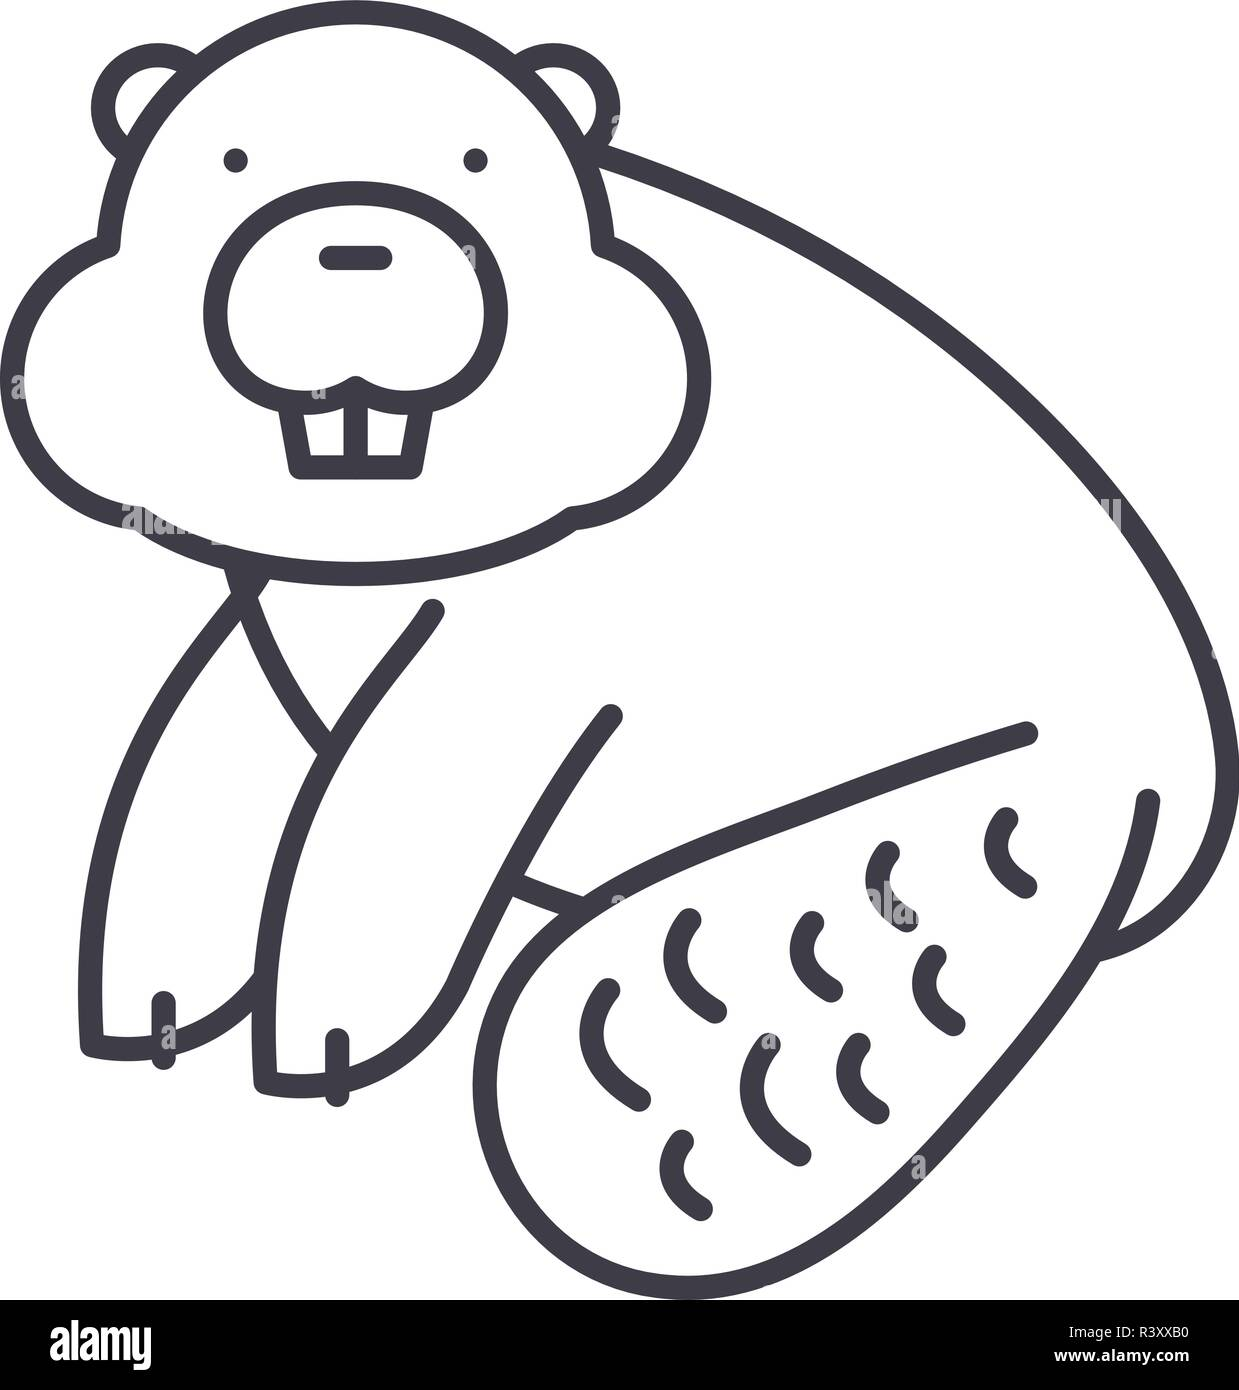 Beaver line icon concept. Beaver vector linear illustration, symbol, sign - Stock Image